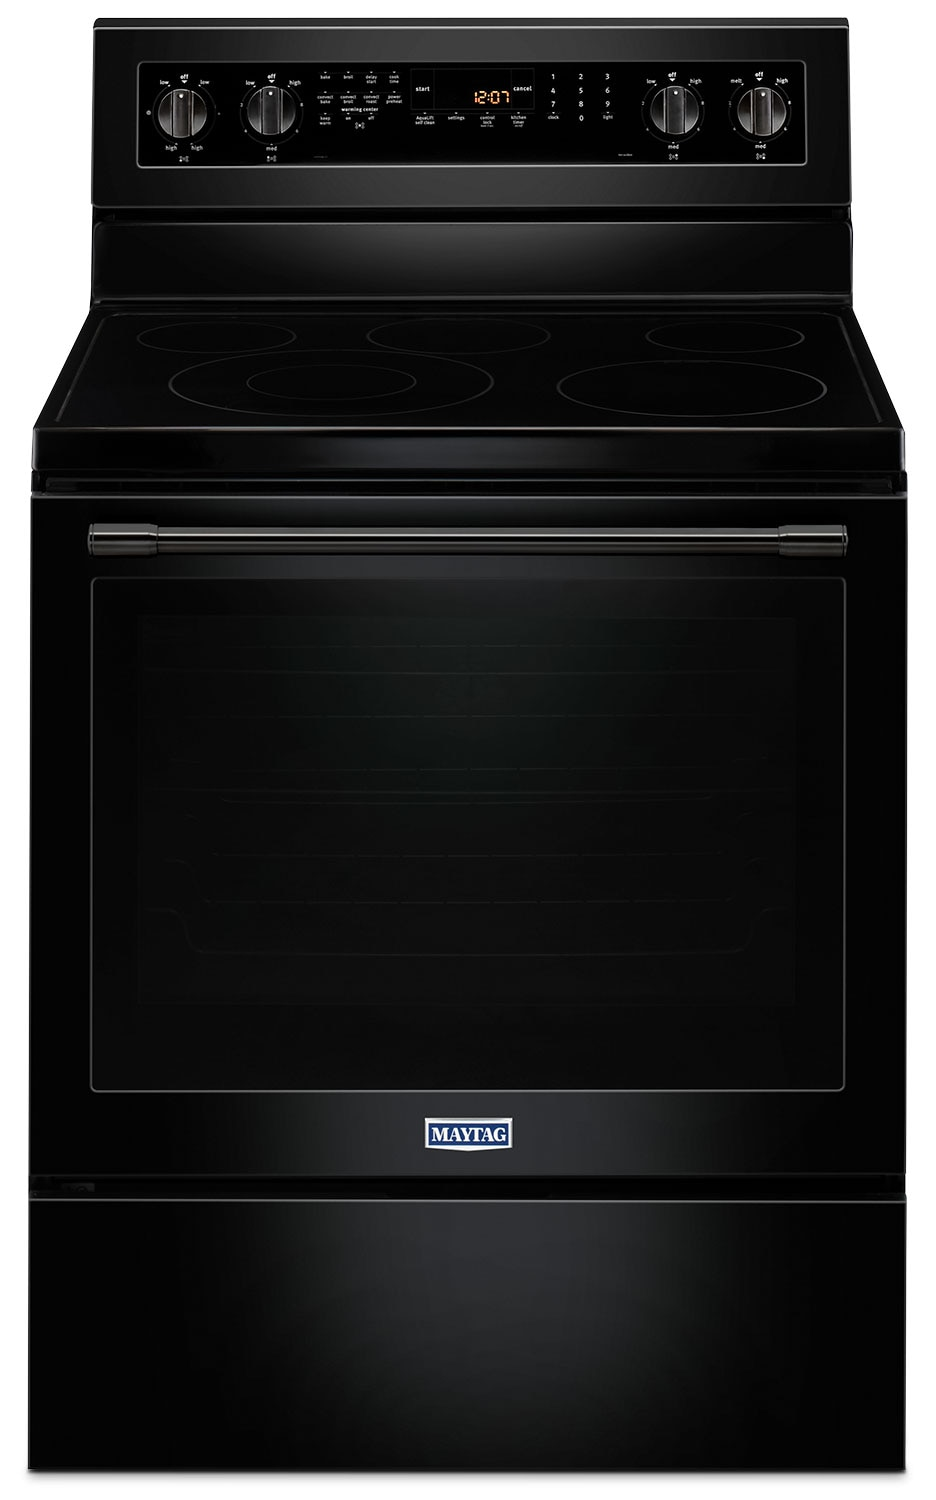 Maytag 6.4 Cu. Ft. Freestanding Electric Convection Range – YMER8800FB